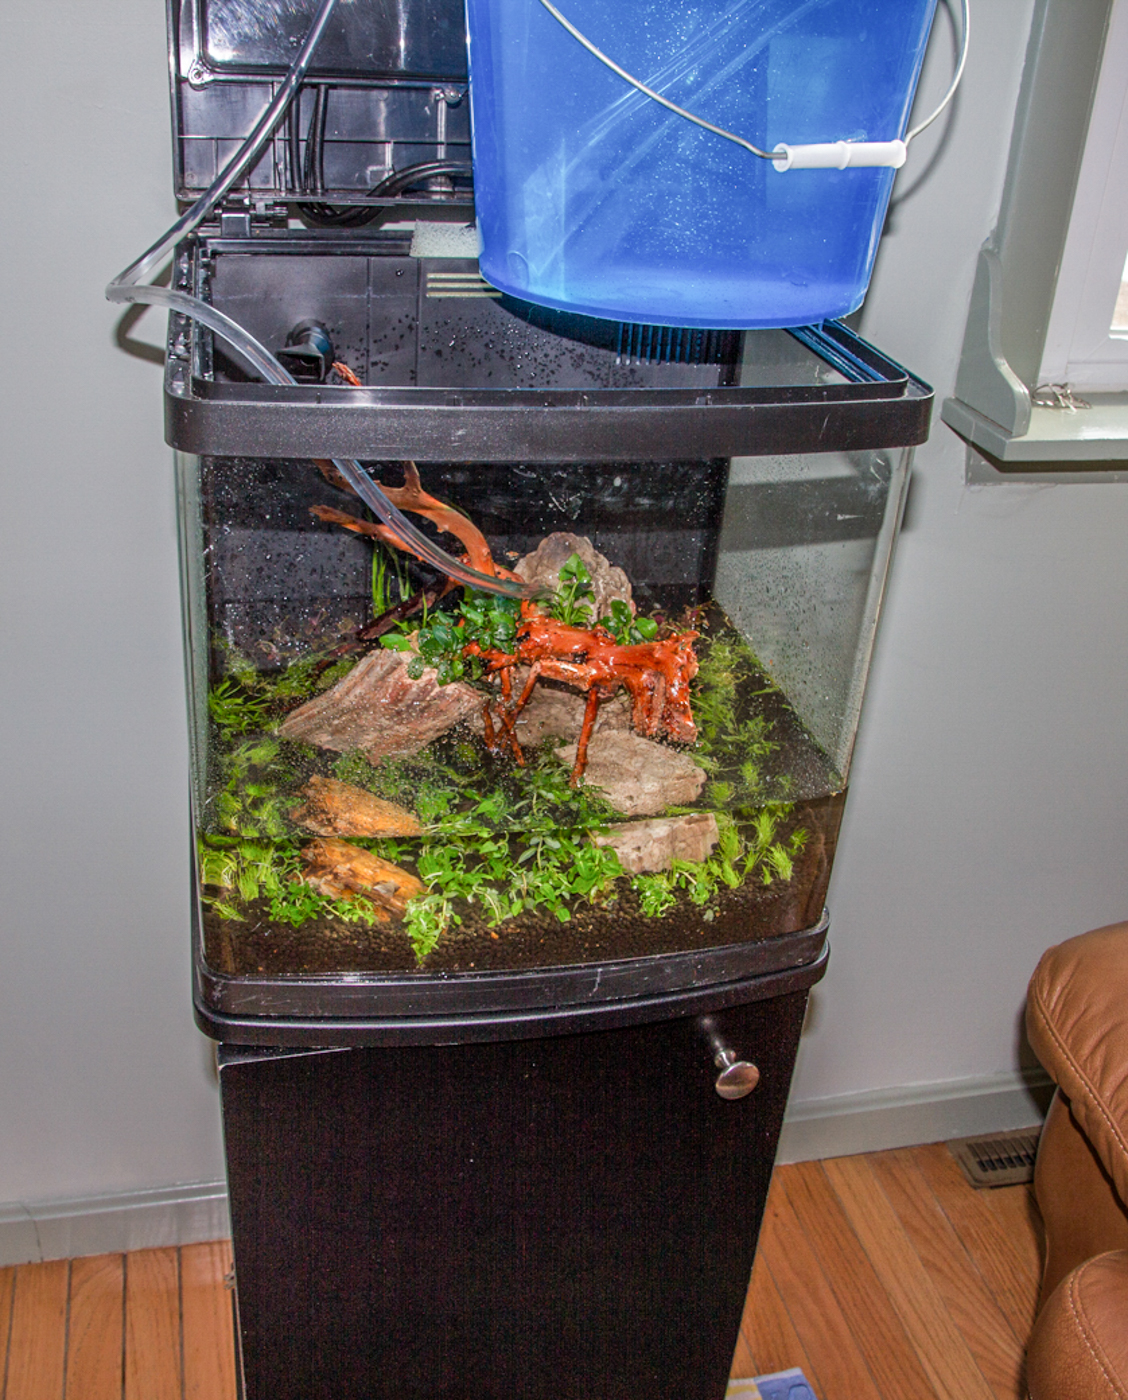 In this 14 gallon Coralife Biocube there was no place to put a dish. You can still fill the tank cleanly, but it means that you have to control the water flow even more carefully. In this case, I balanced a bucket on top of the tank, and siphoned water in through tubing a little larger than airline tubing.